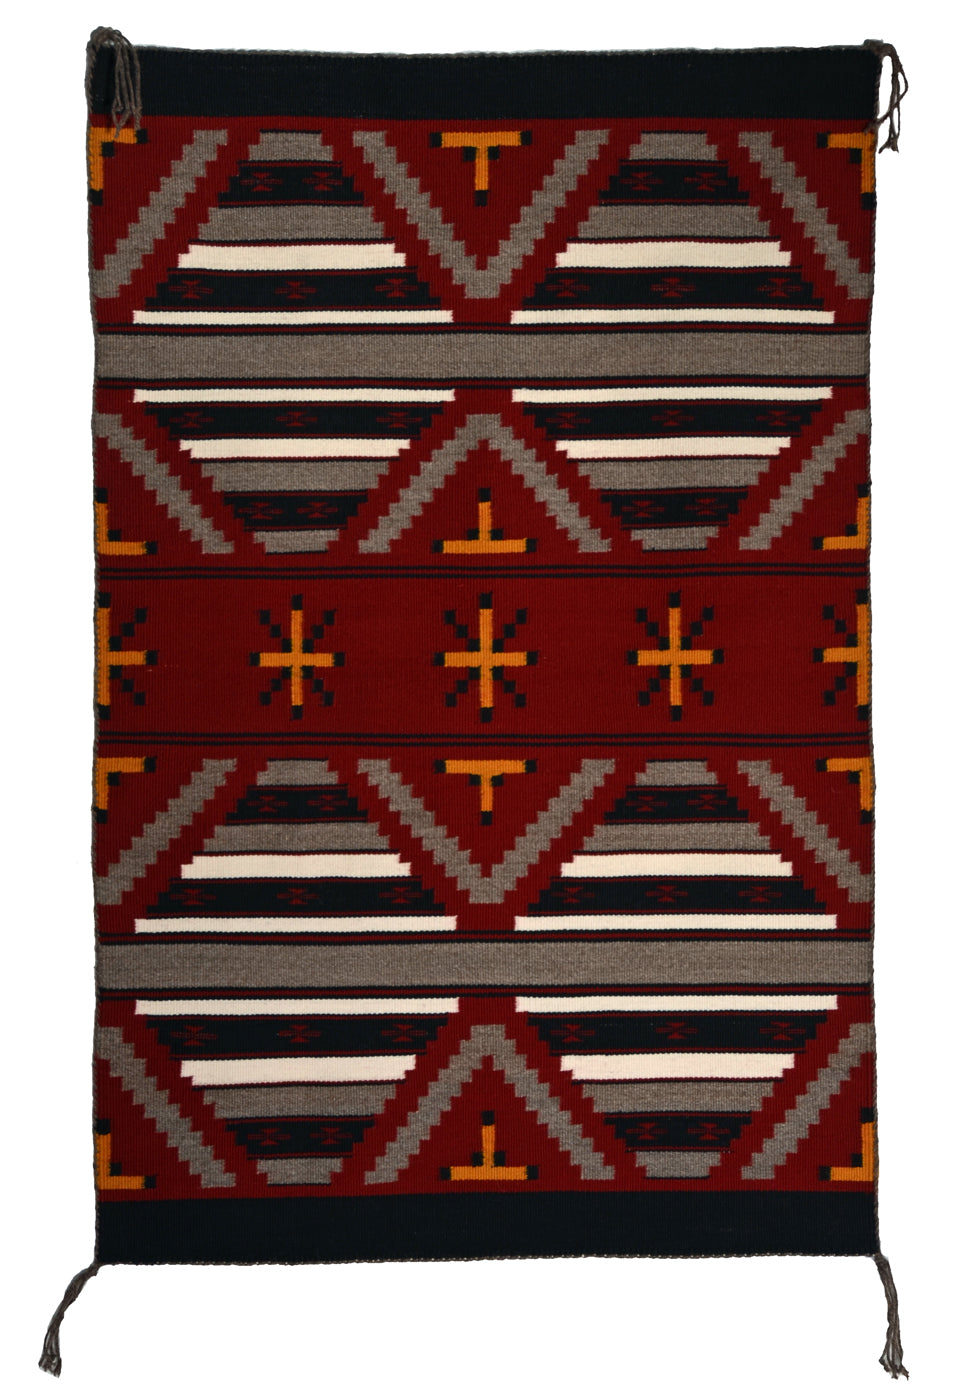 Navajo Mini-Serape : American Indian Rug : Ruby Watchman : 3399 - Getzwiller's Nizhoni Ranch Gallery